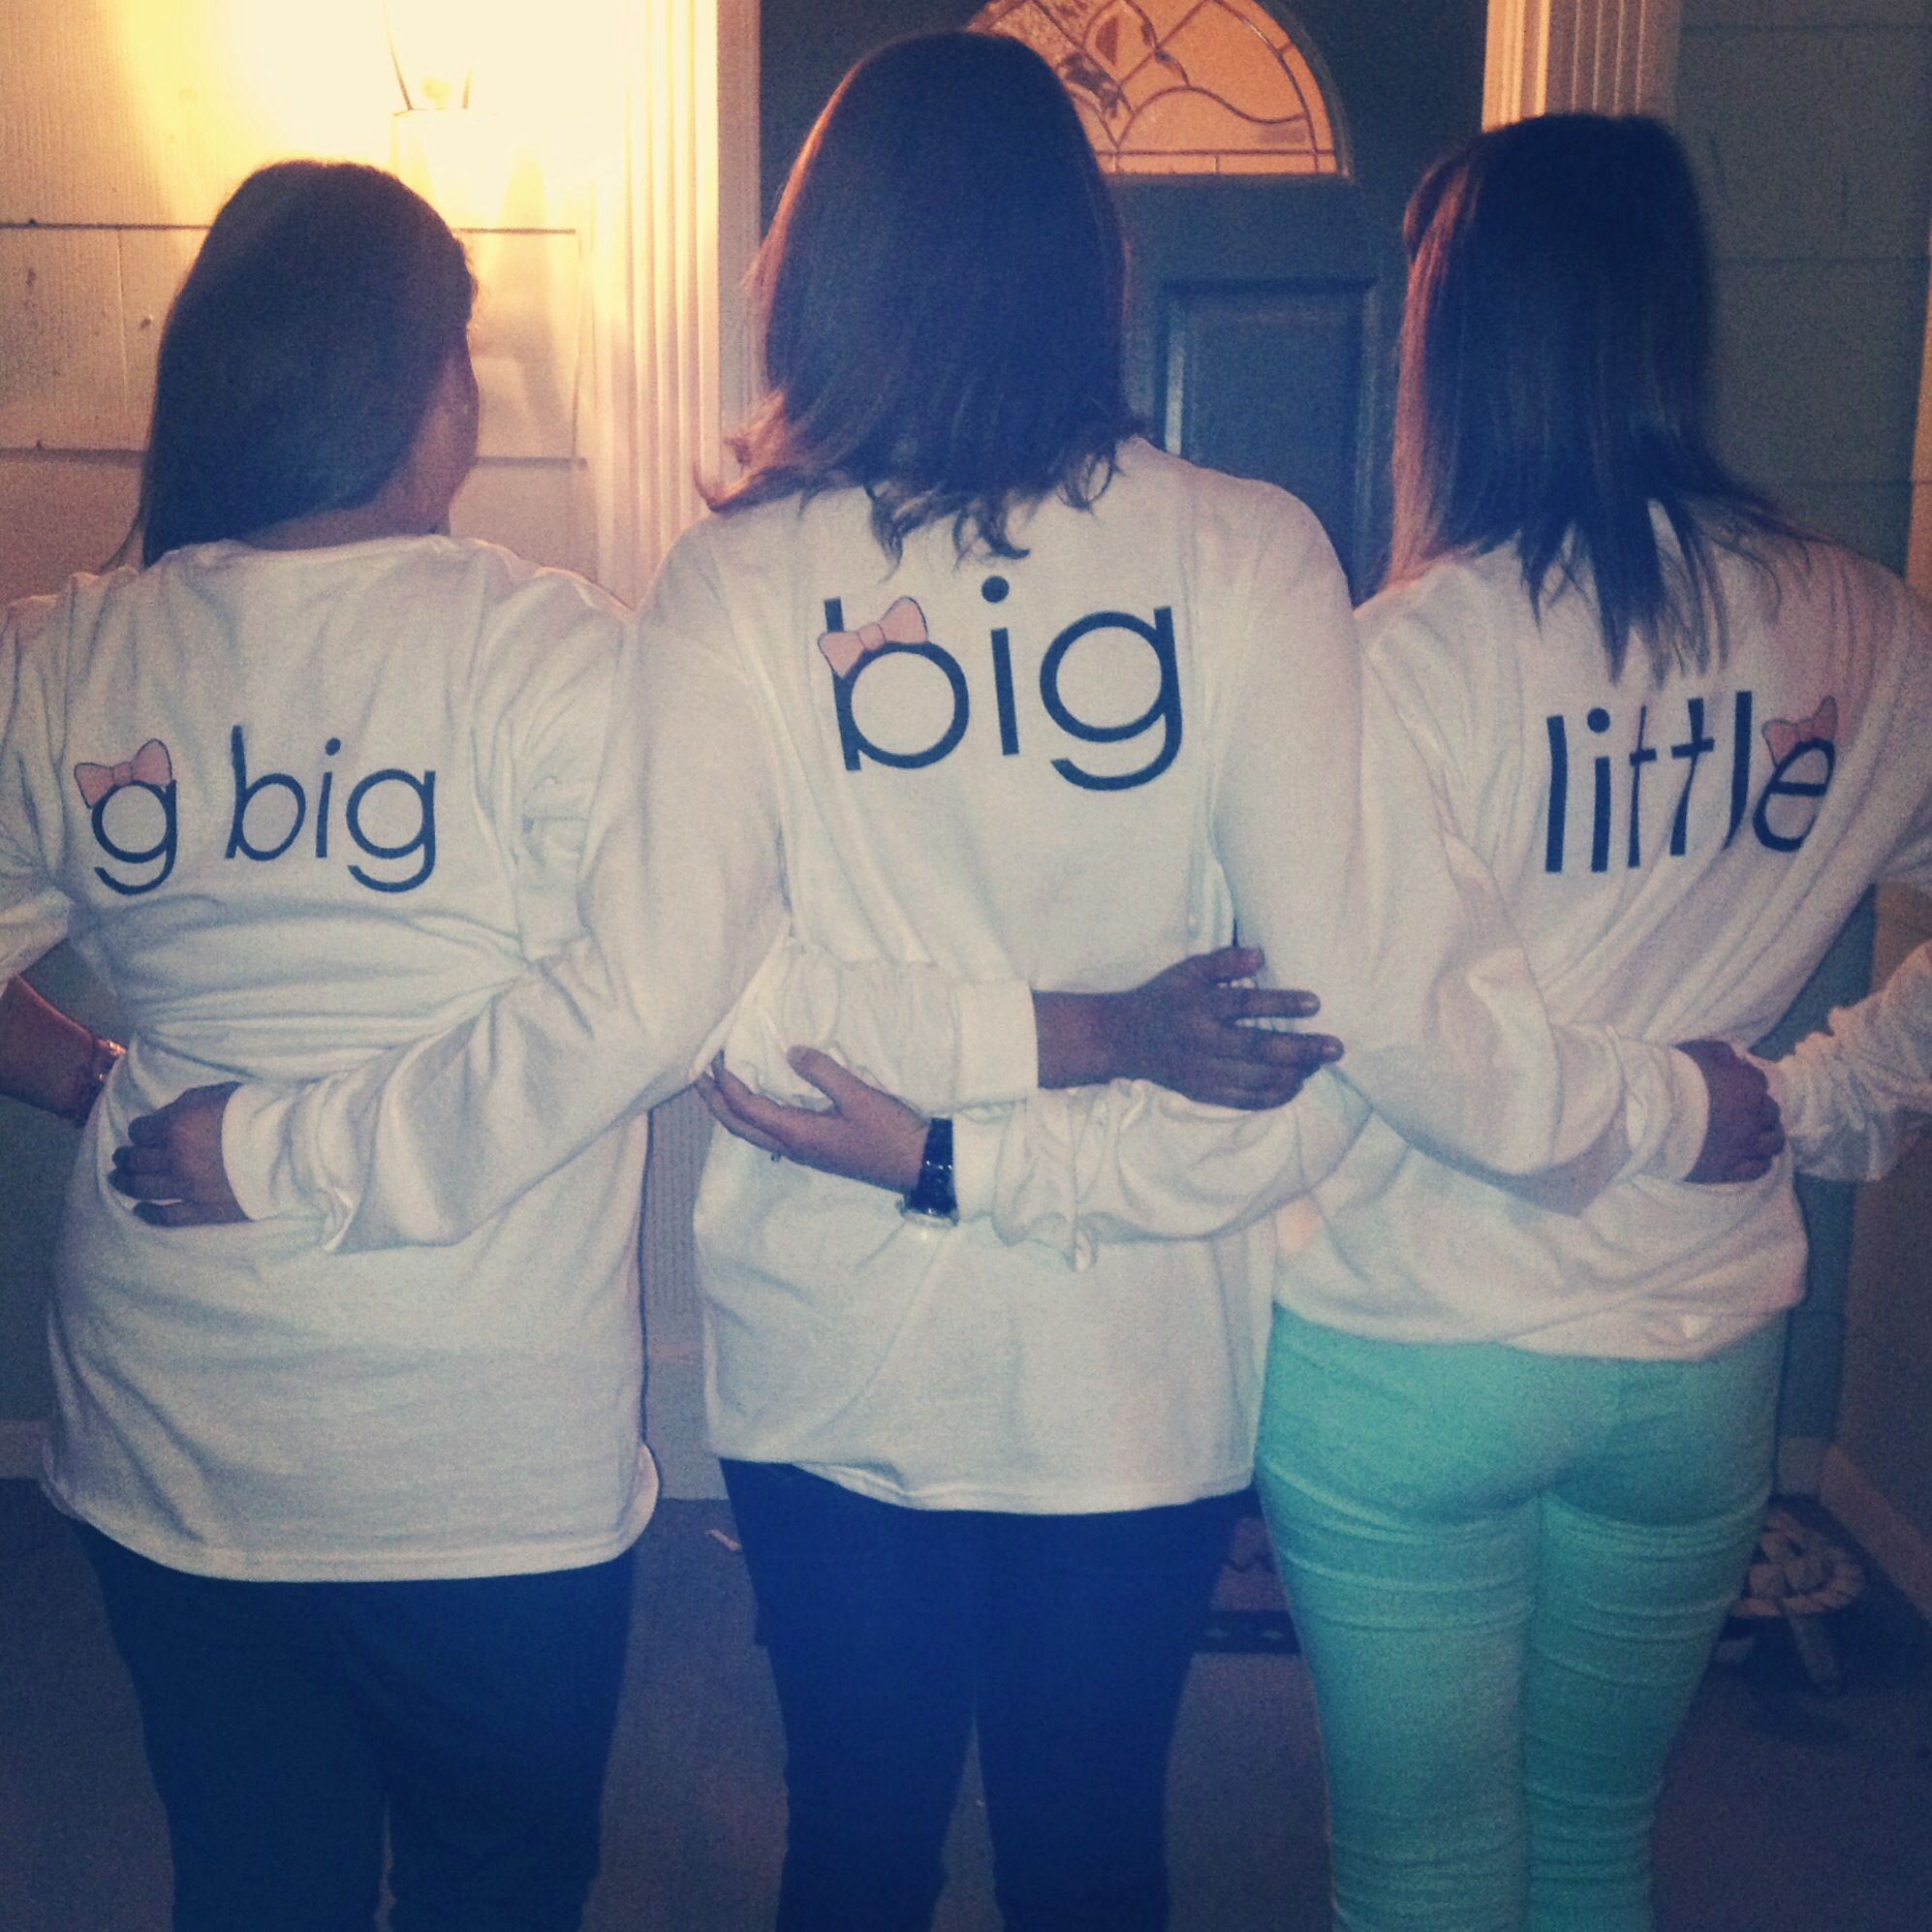 Grand big, big, little shirts for fall 2013 big sister reveal ☀️ #sunshinefamily #dzlam #winthropunivesity